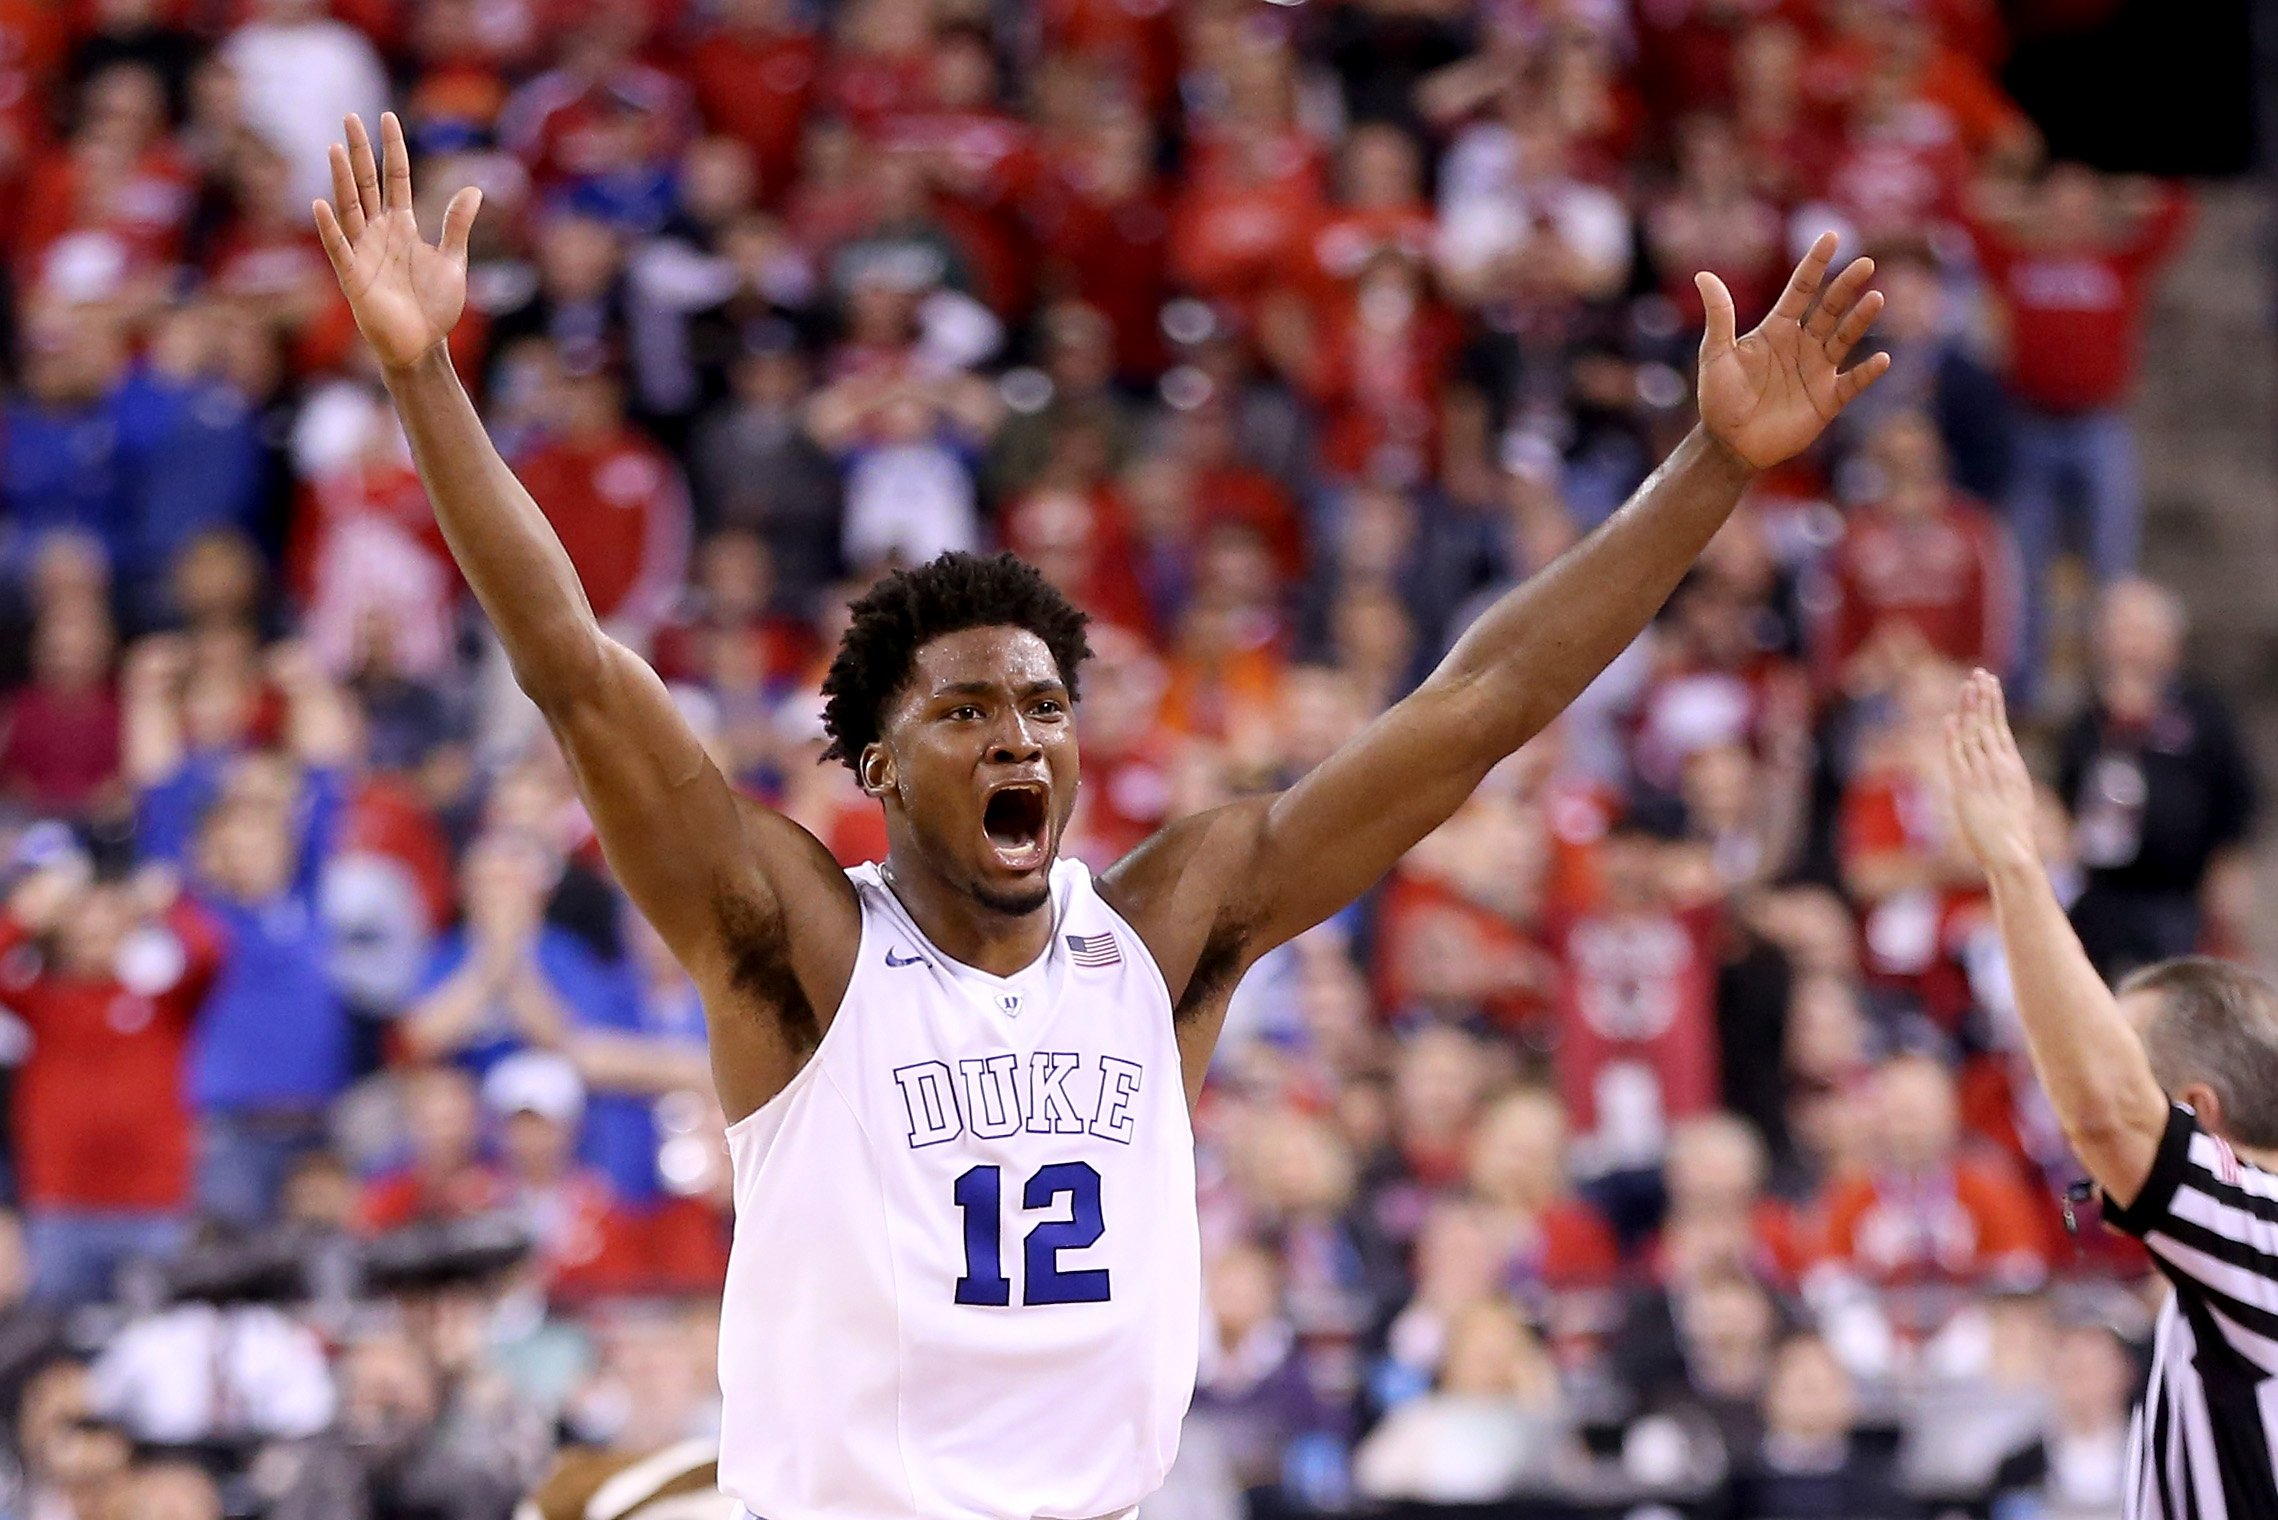 Justise Winslow of the Duke Blue Devils celebrates after defeating the Wisconsin Badgers during the NCAA Men's Final Four National Championship at Lucas Oil Stadium on April 6, 2015 in Indianapolis.